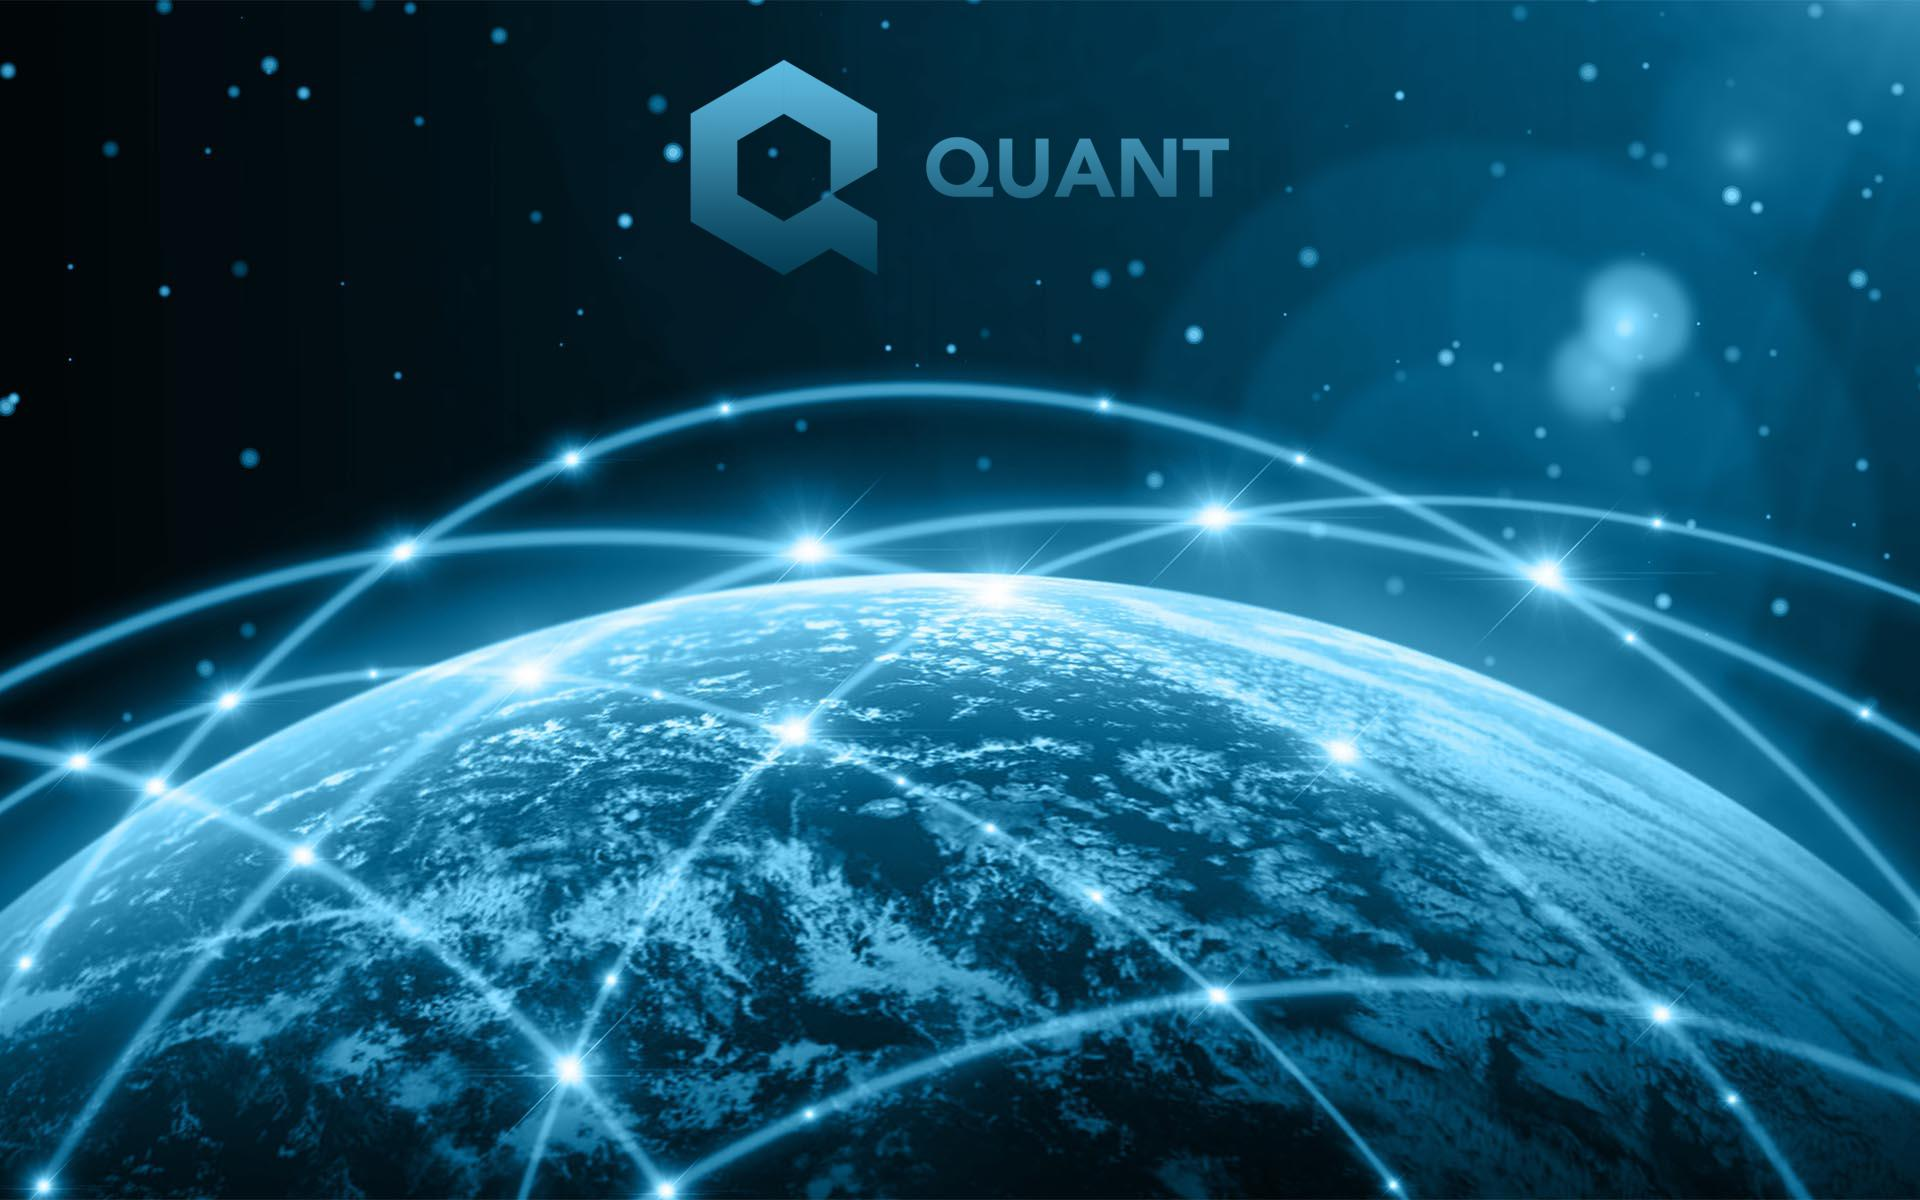 """✅ """"Hundreds of European banks and financial institutions have already signed up for #Overledger and can connect their #networks and #blockchain with no additional infrastructure in a matter of minutes""""  We are at the beginning of an incredible movement in history 🚀  $QNT #DLT https://t.co/AT6ps8hoR1"""